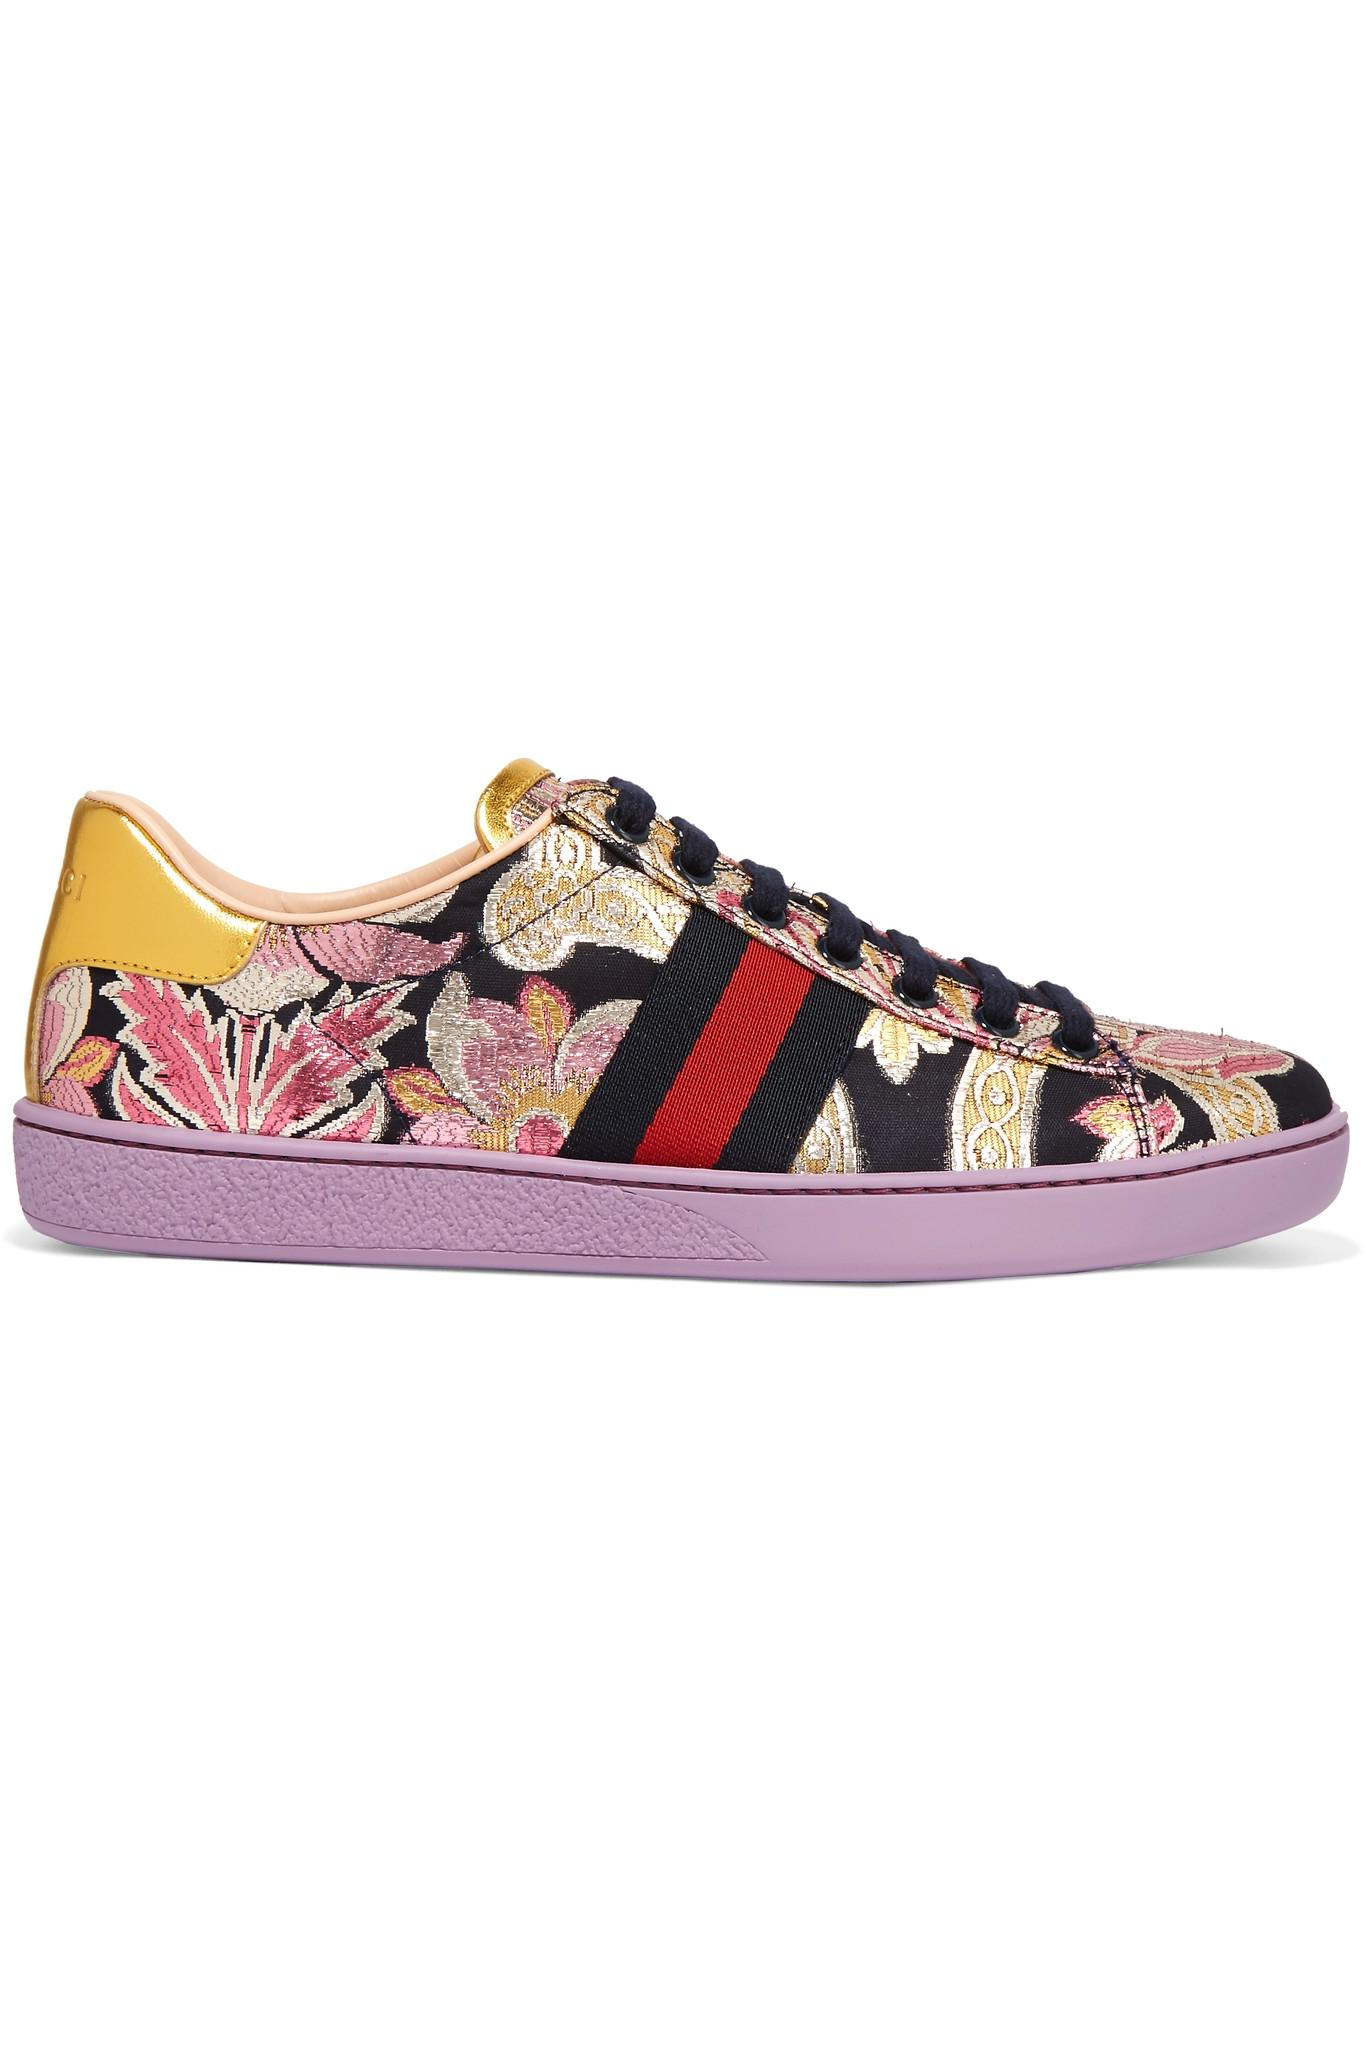 60d06ad5c1d Gucci Ace Metallic Leather-trimmed Brocade Sneakers in Purple - Lyst